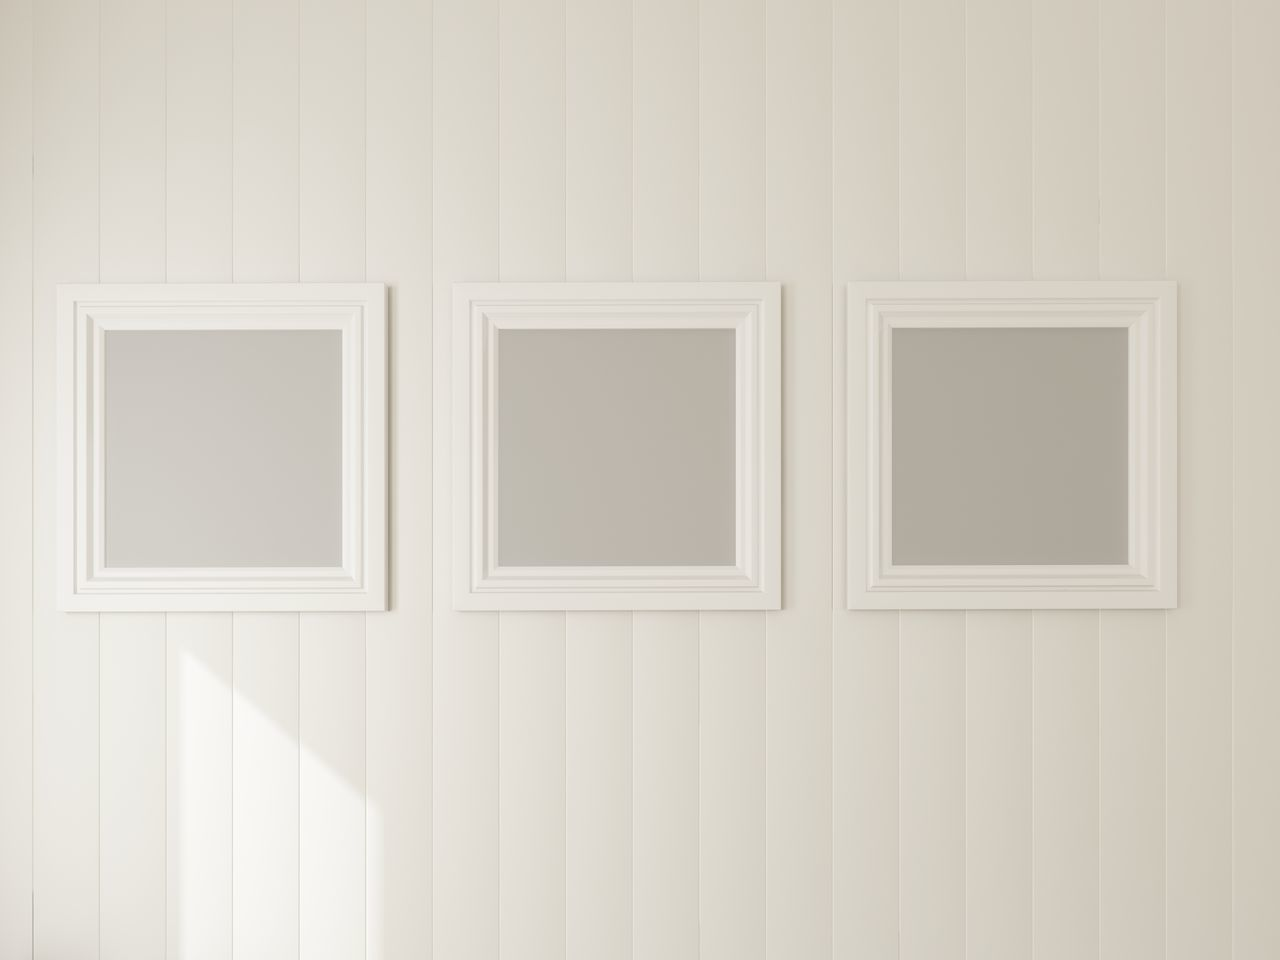 Backgrounds Blank Close-up Domestic Room Empty Museum No People Painted Image Paper Photograph Picture Frame White Color Wood - Material